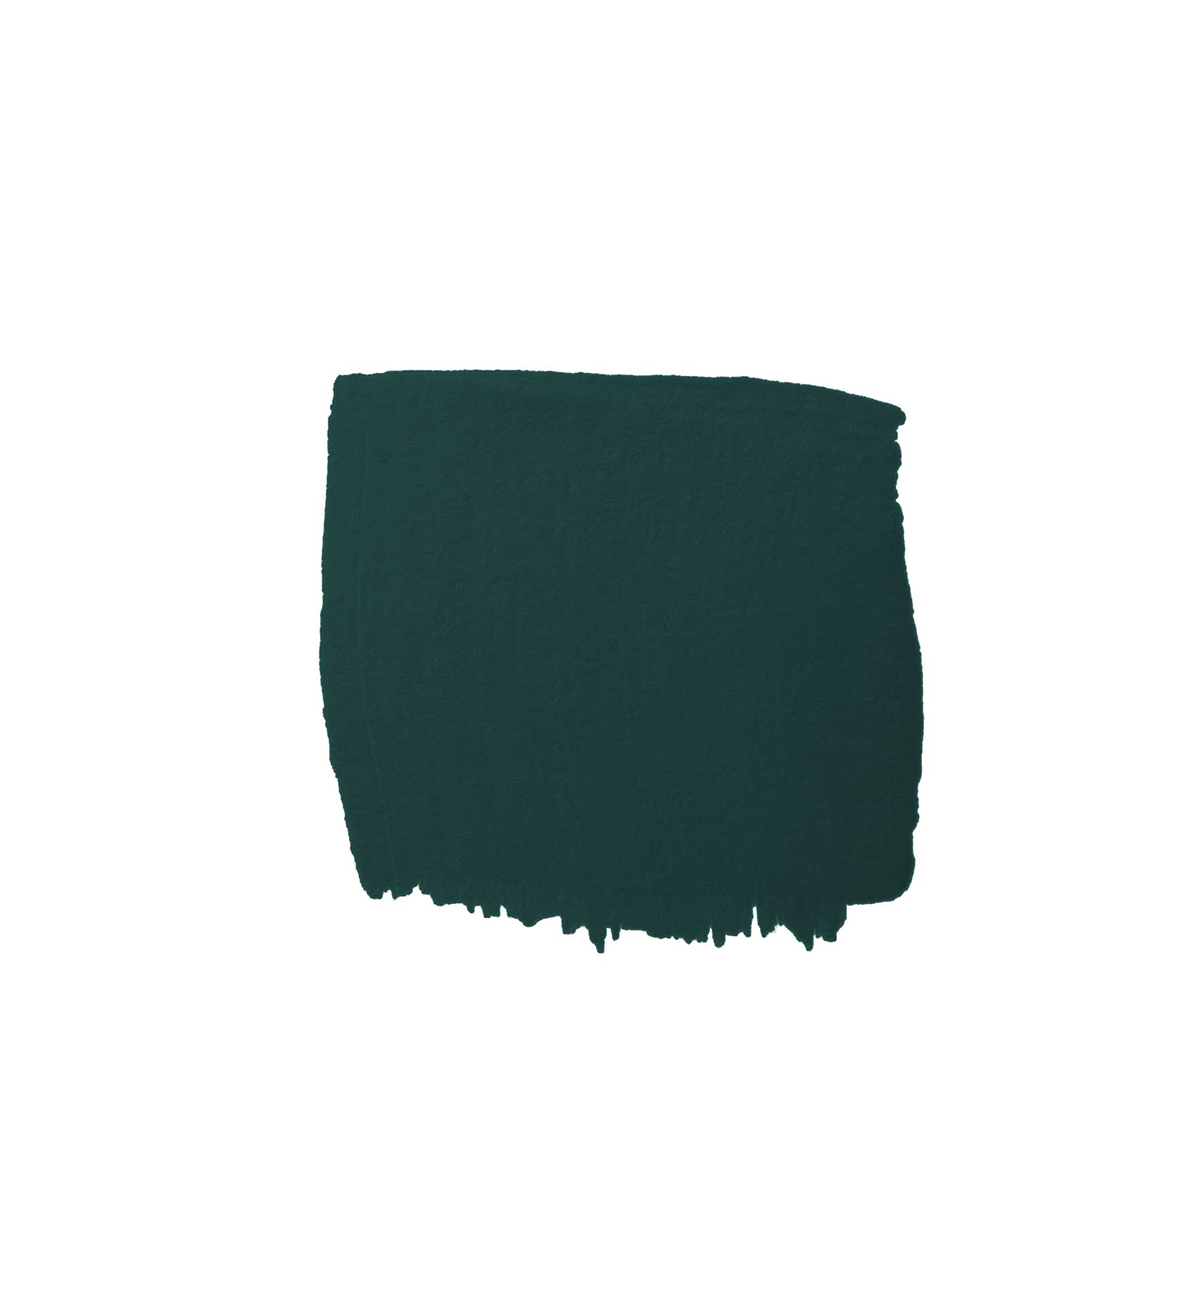 Green paint color